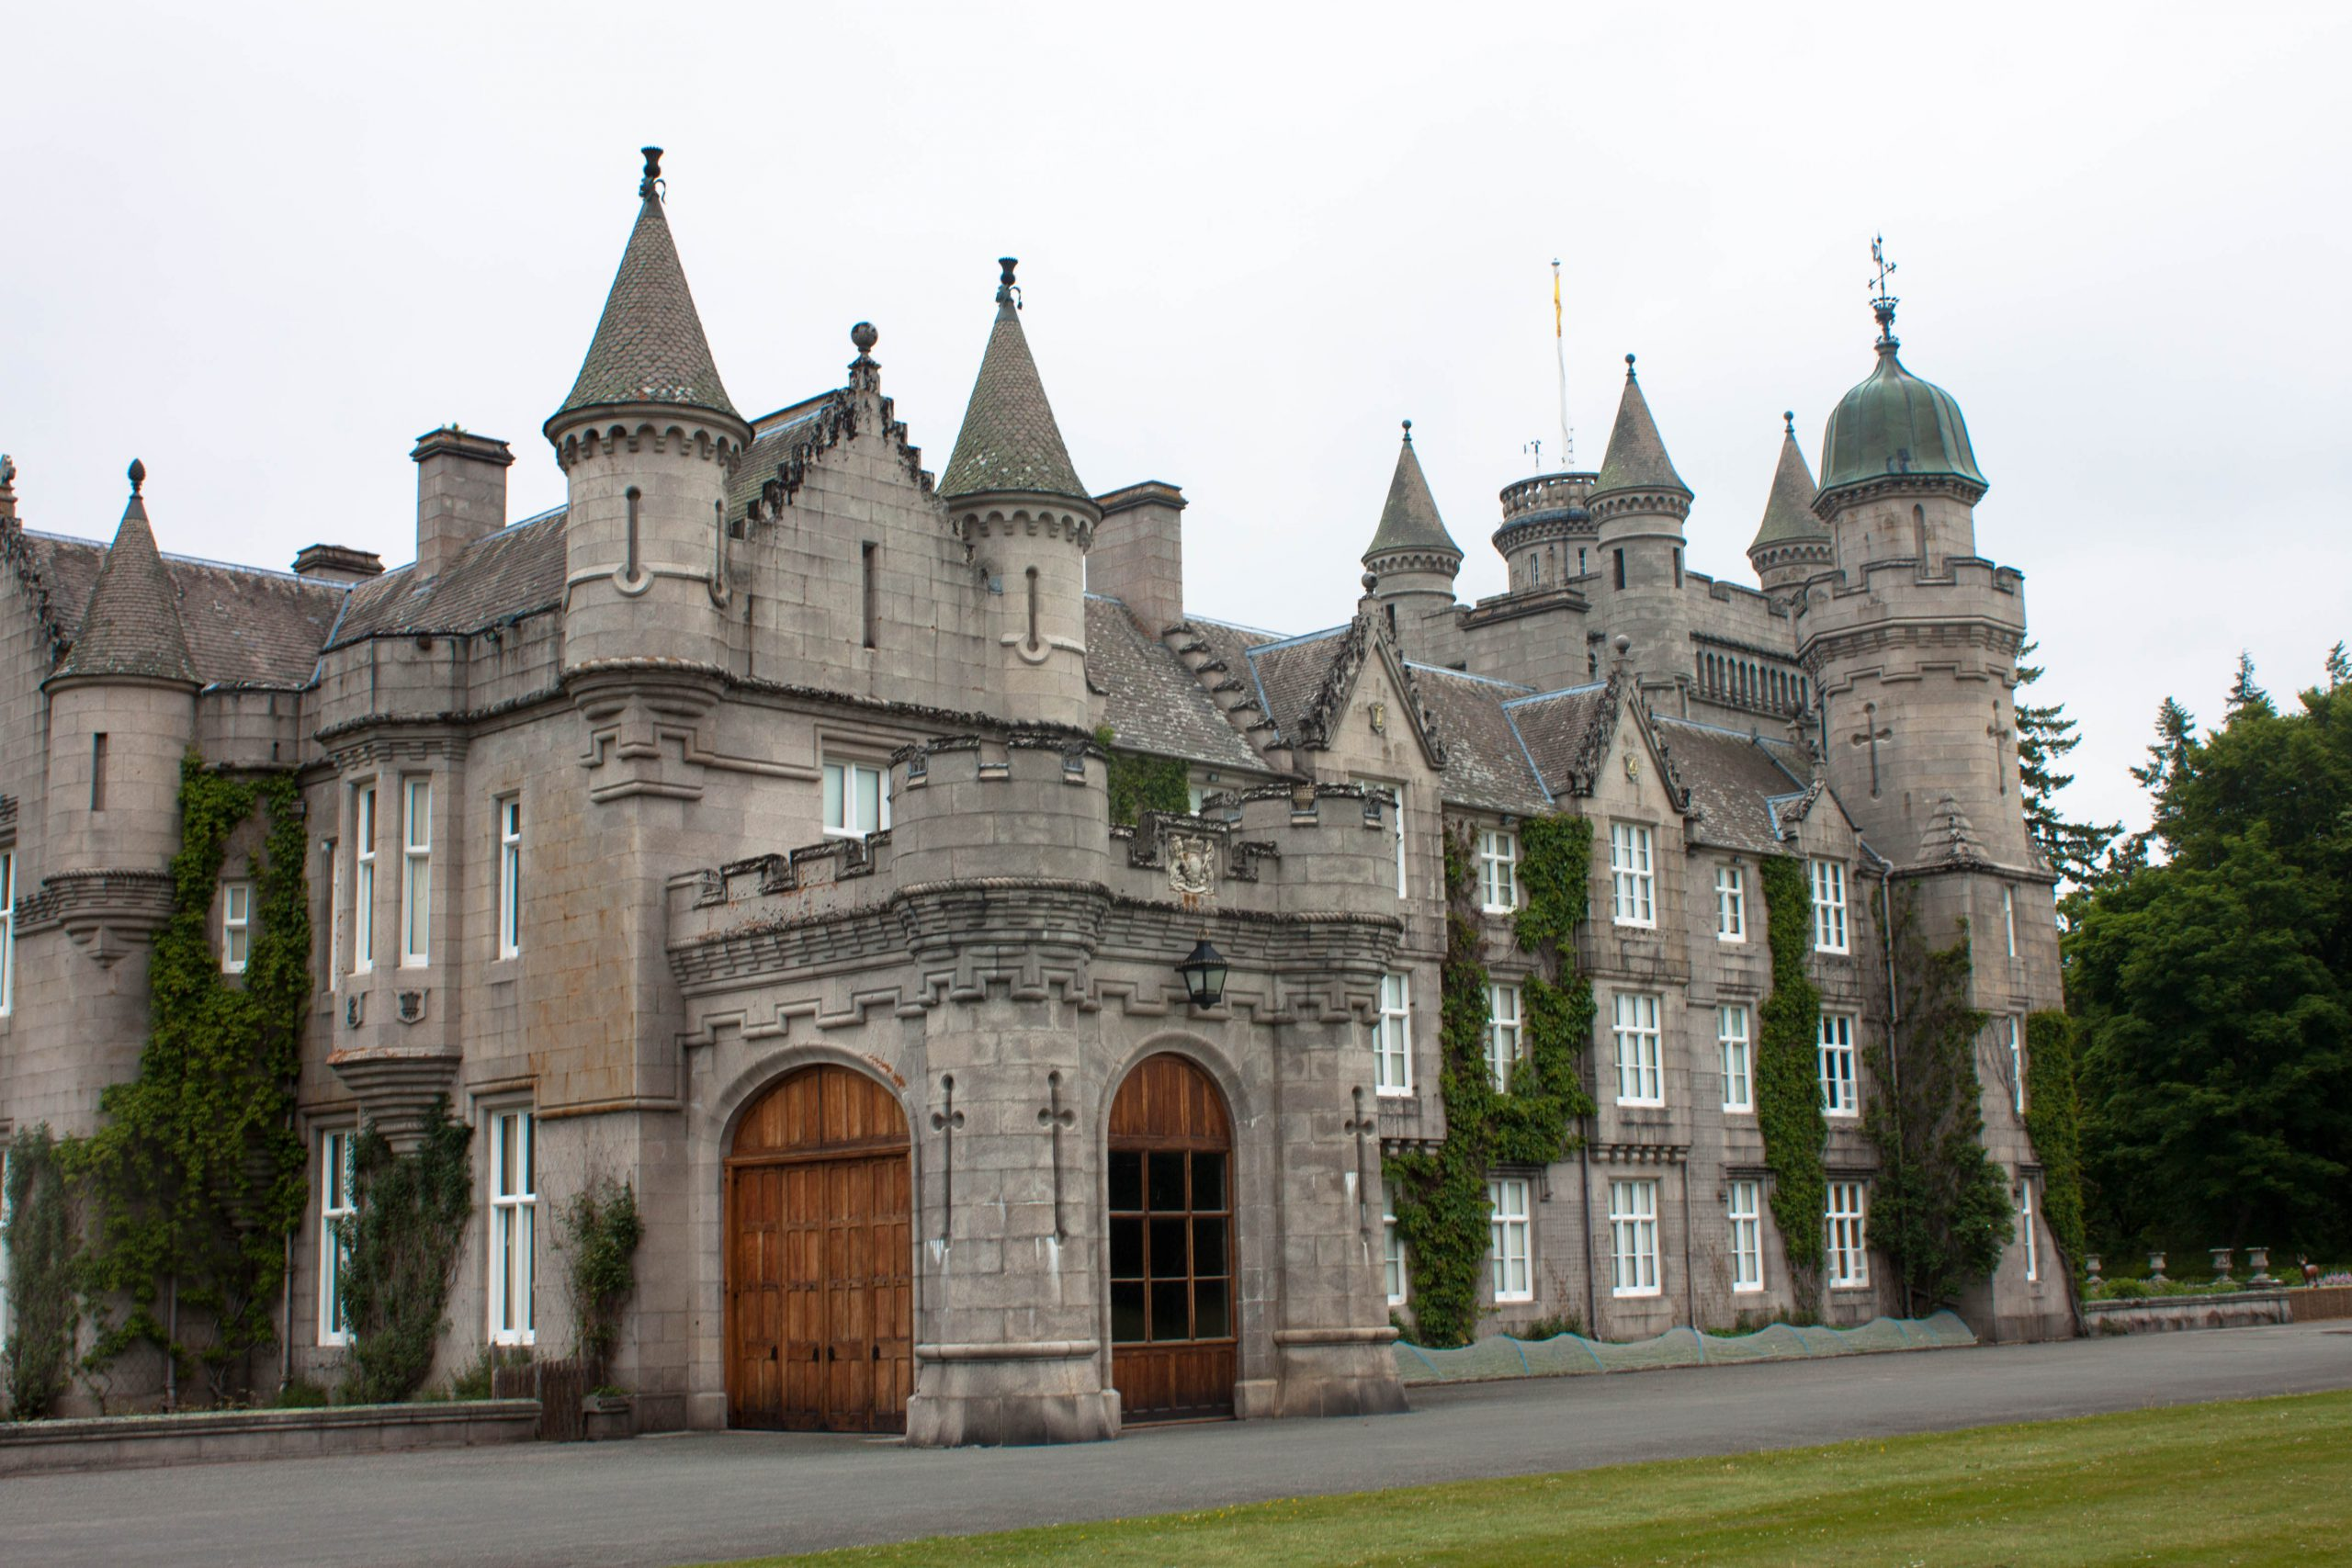 Day 13: The Malt Whisky Trail, Balmoral Castle, and an awesome Edinburgh hotel #HIUK16